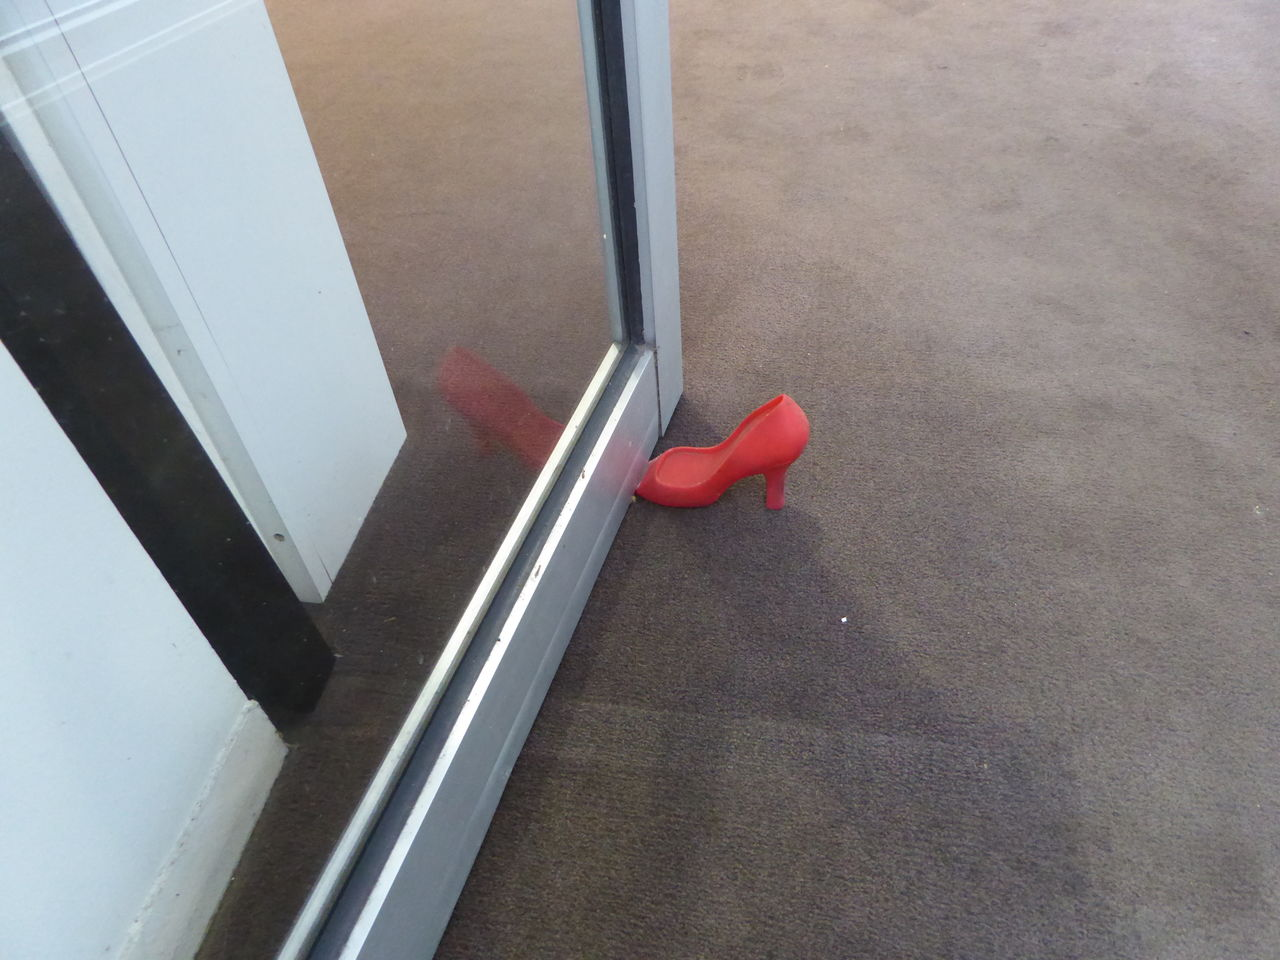 Cinderella Come In Baby Door Stopper High Angle View Red Red High Heels We Are Open